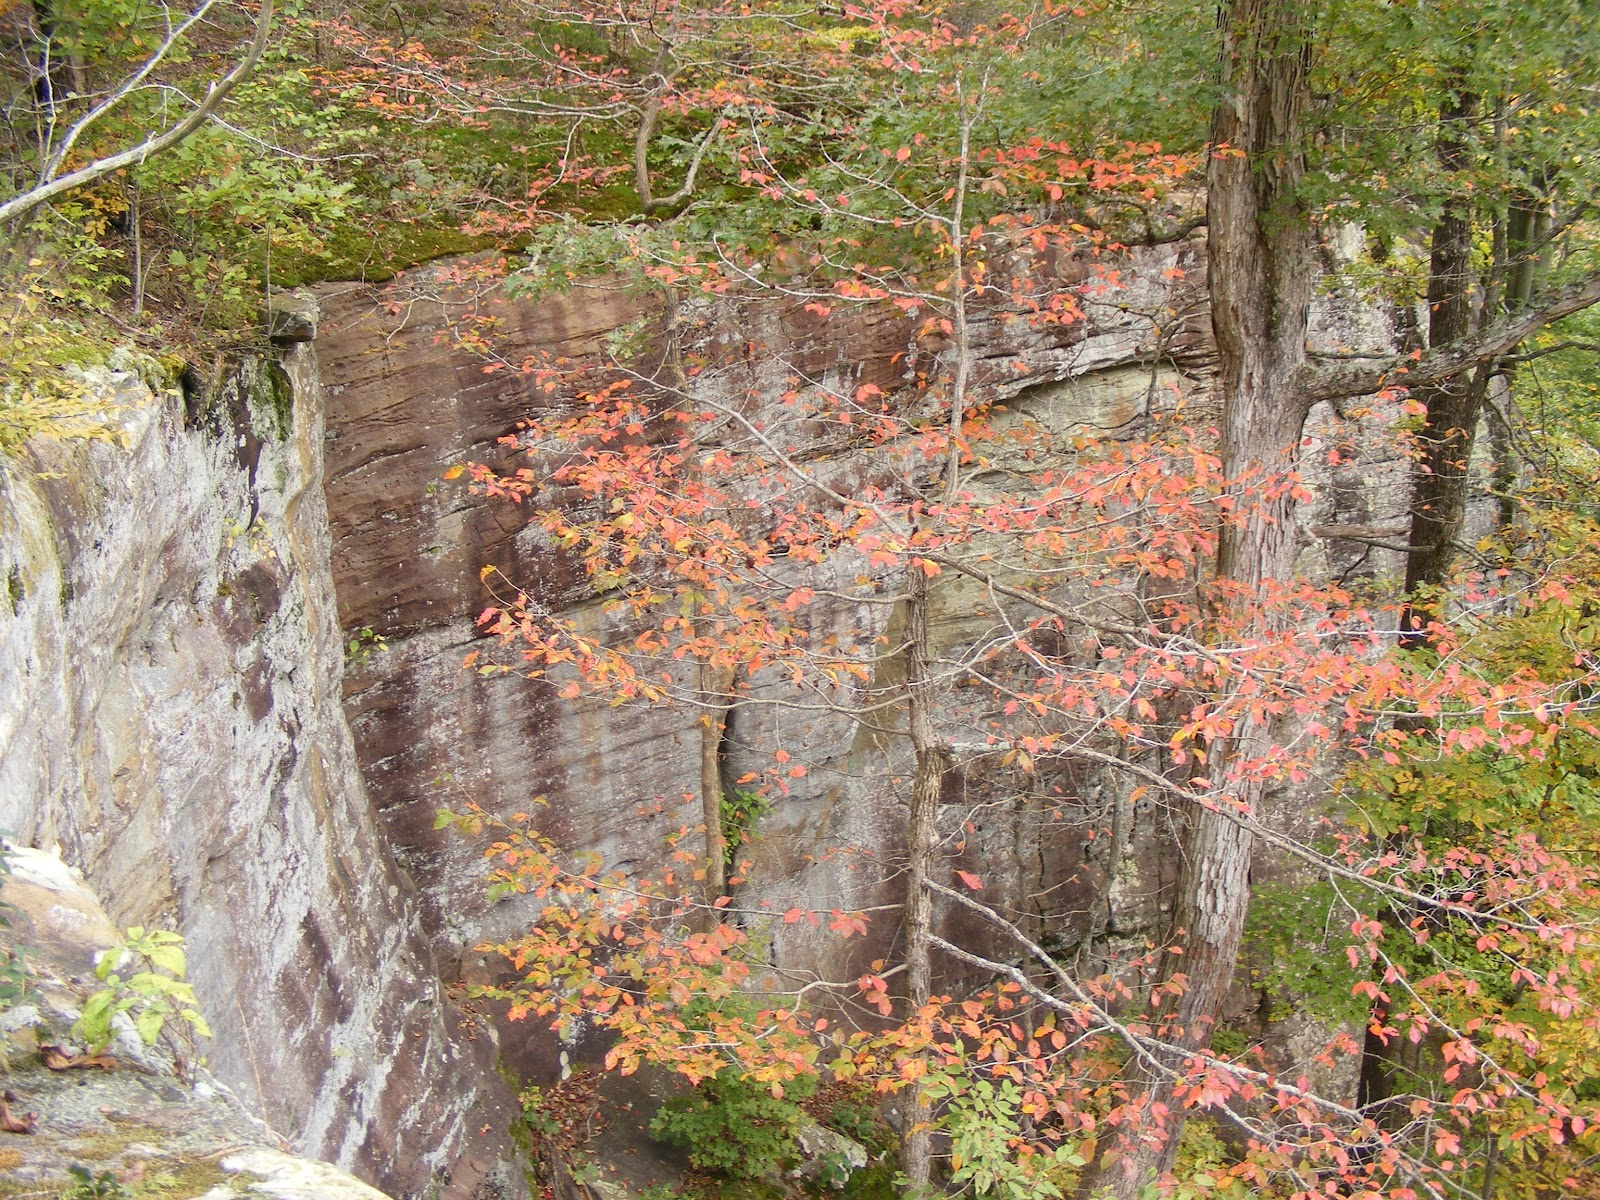 bell smith springs is one of eight wilderness areas in shawnee national forest located in far southern illinois it is essentially a midwestern canyon - Shawnee National Forest Garden Of The Gods